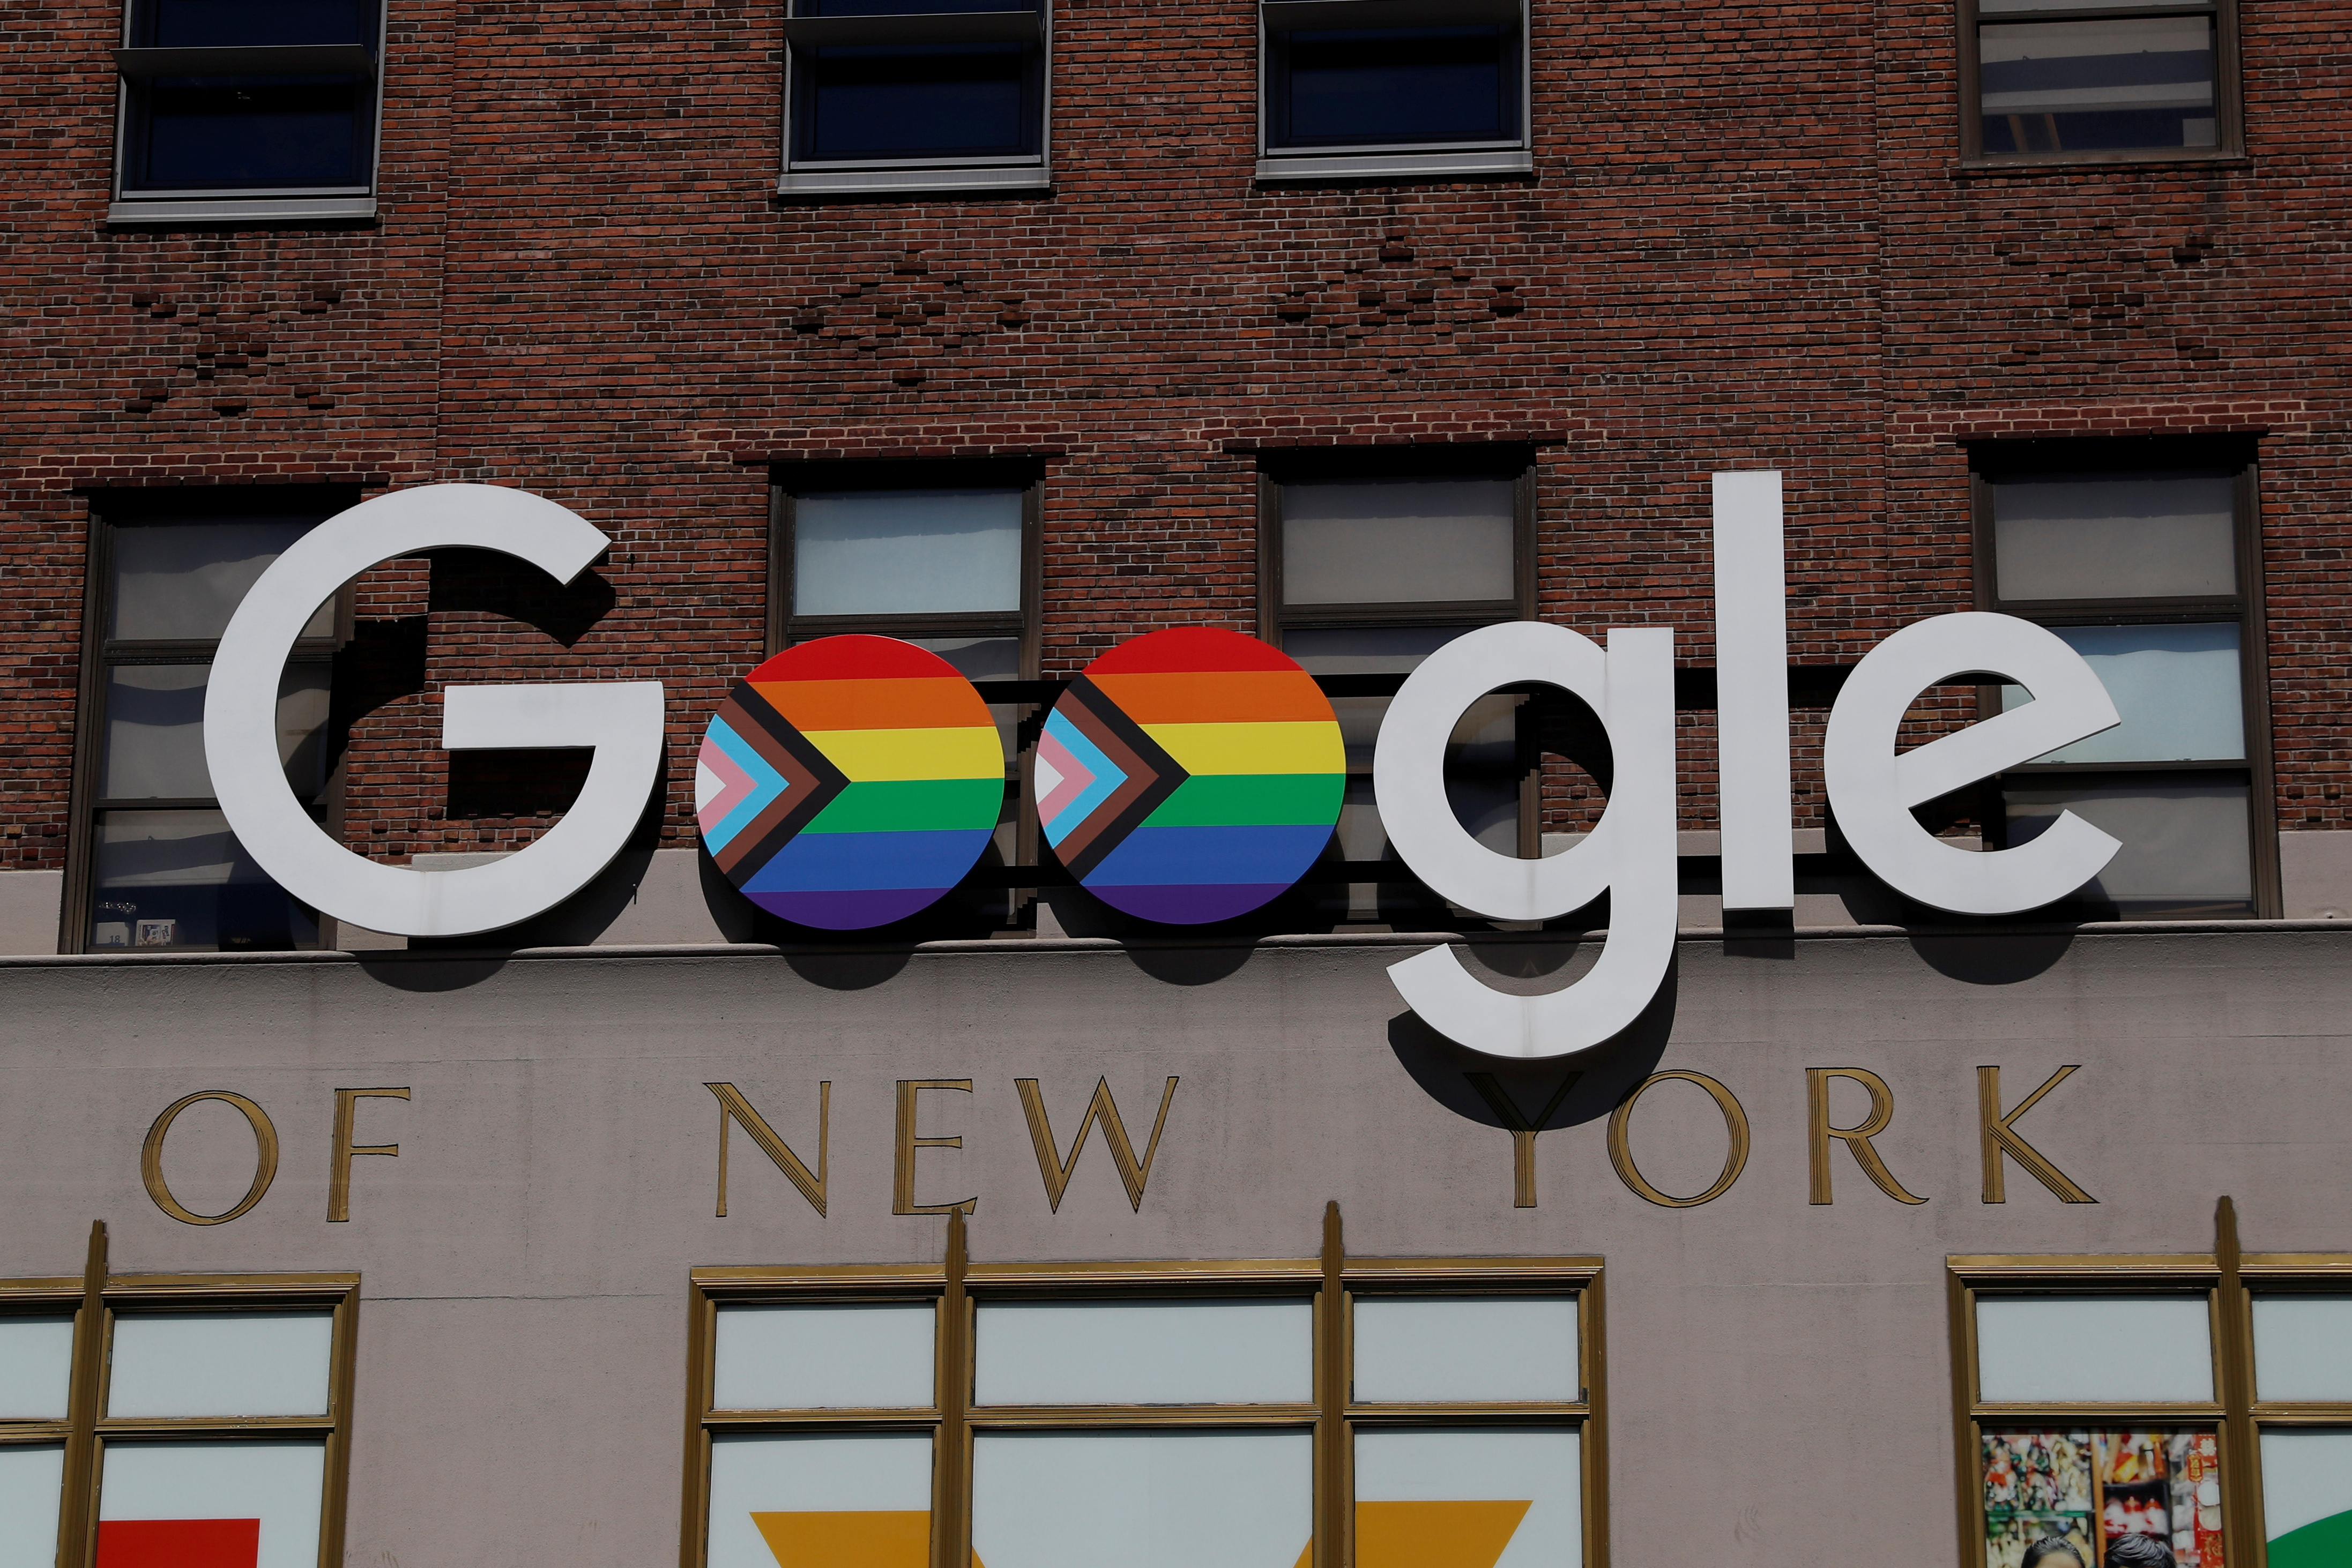 The outside of Google headquarters is seen in New York City, U.S., June 17, 2021. REUTERS/Shannon Stapleton